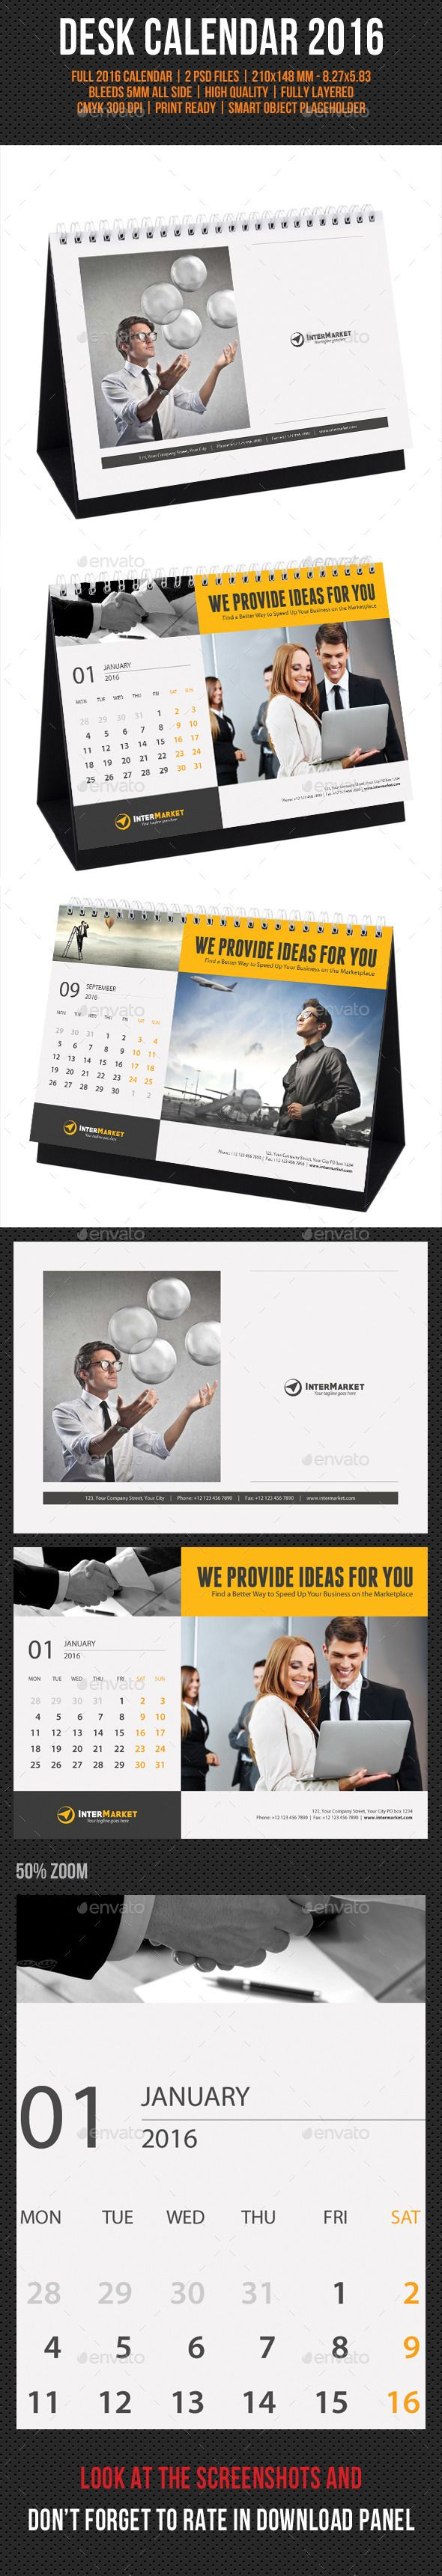 Corporate Desk Calendar 2016 - Calendars Stationery